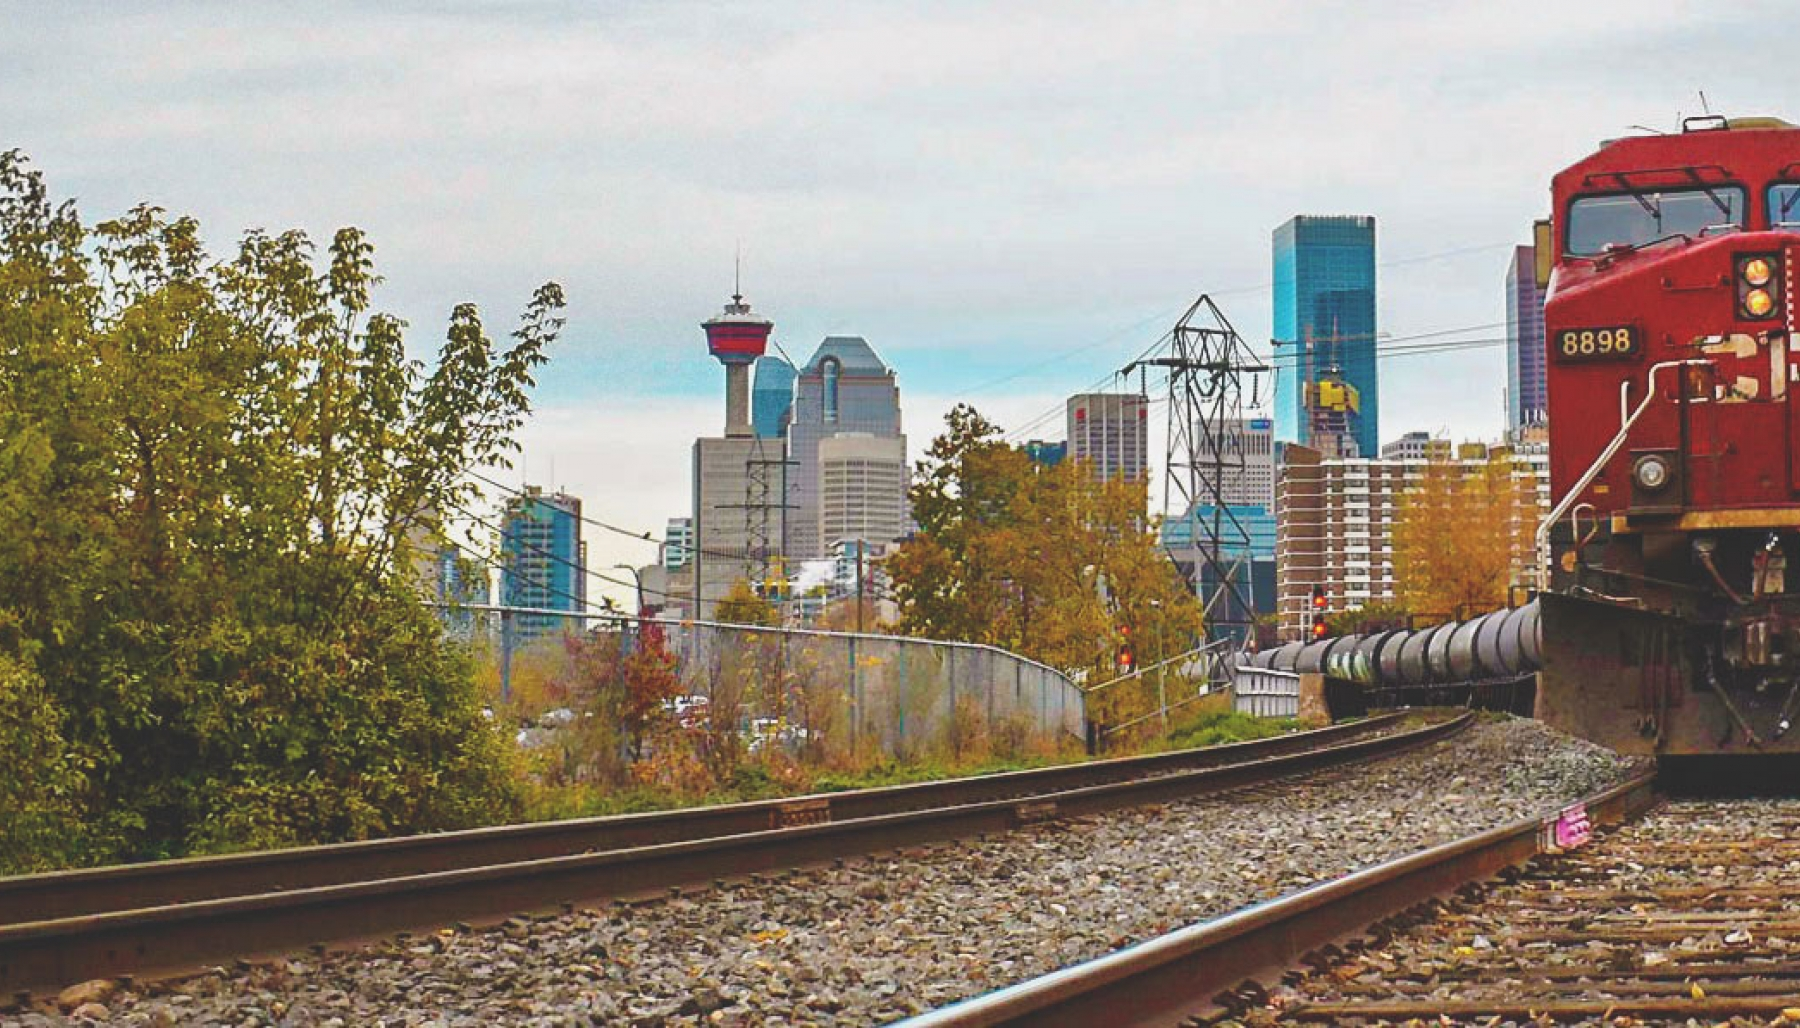 Trains in Calgary